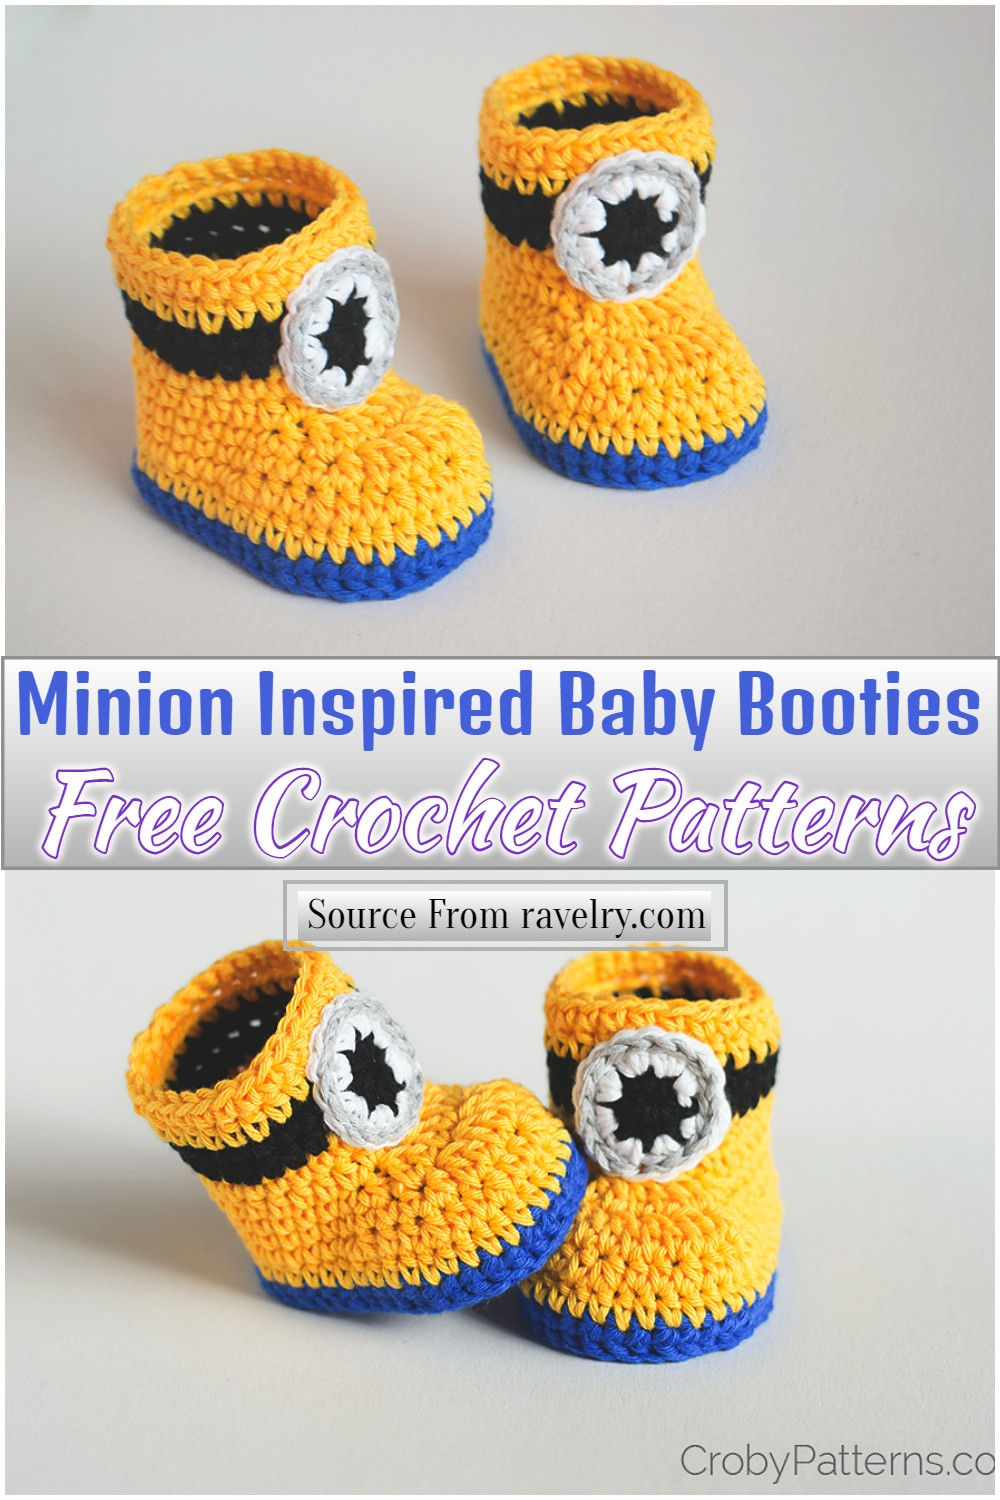 Free Crochet Minion Inspired Baby Booties Pattern